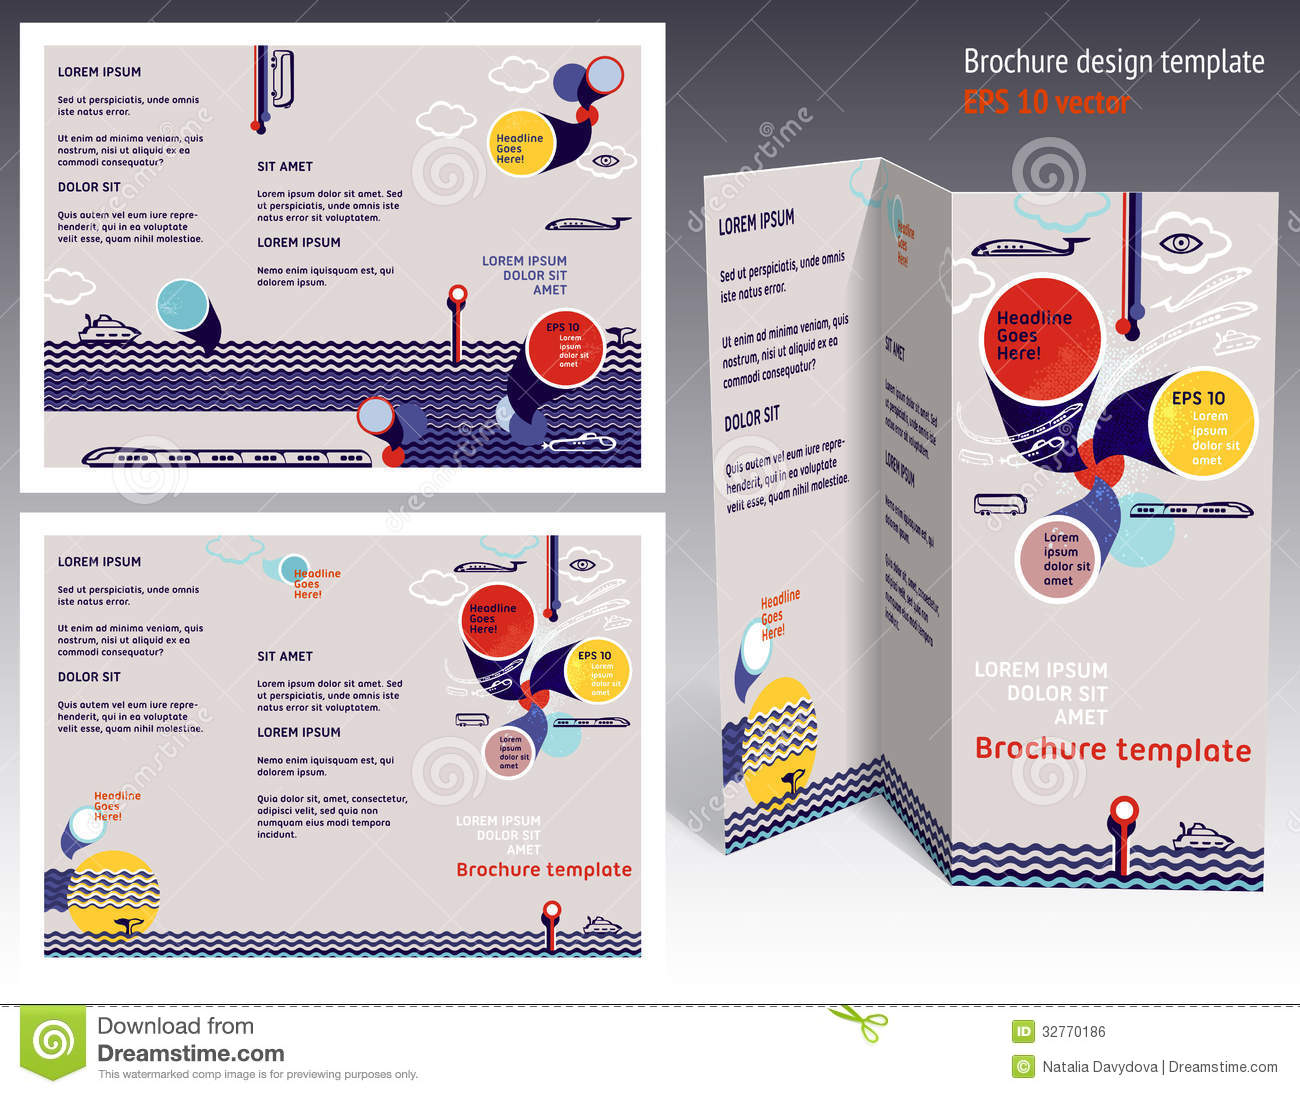 brochure layout templates - brochure booklet z fold 2 side layout editable design